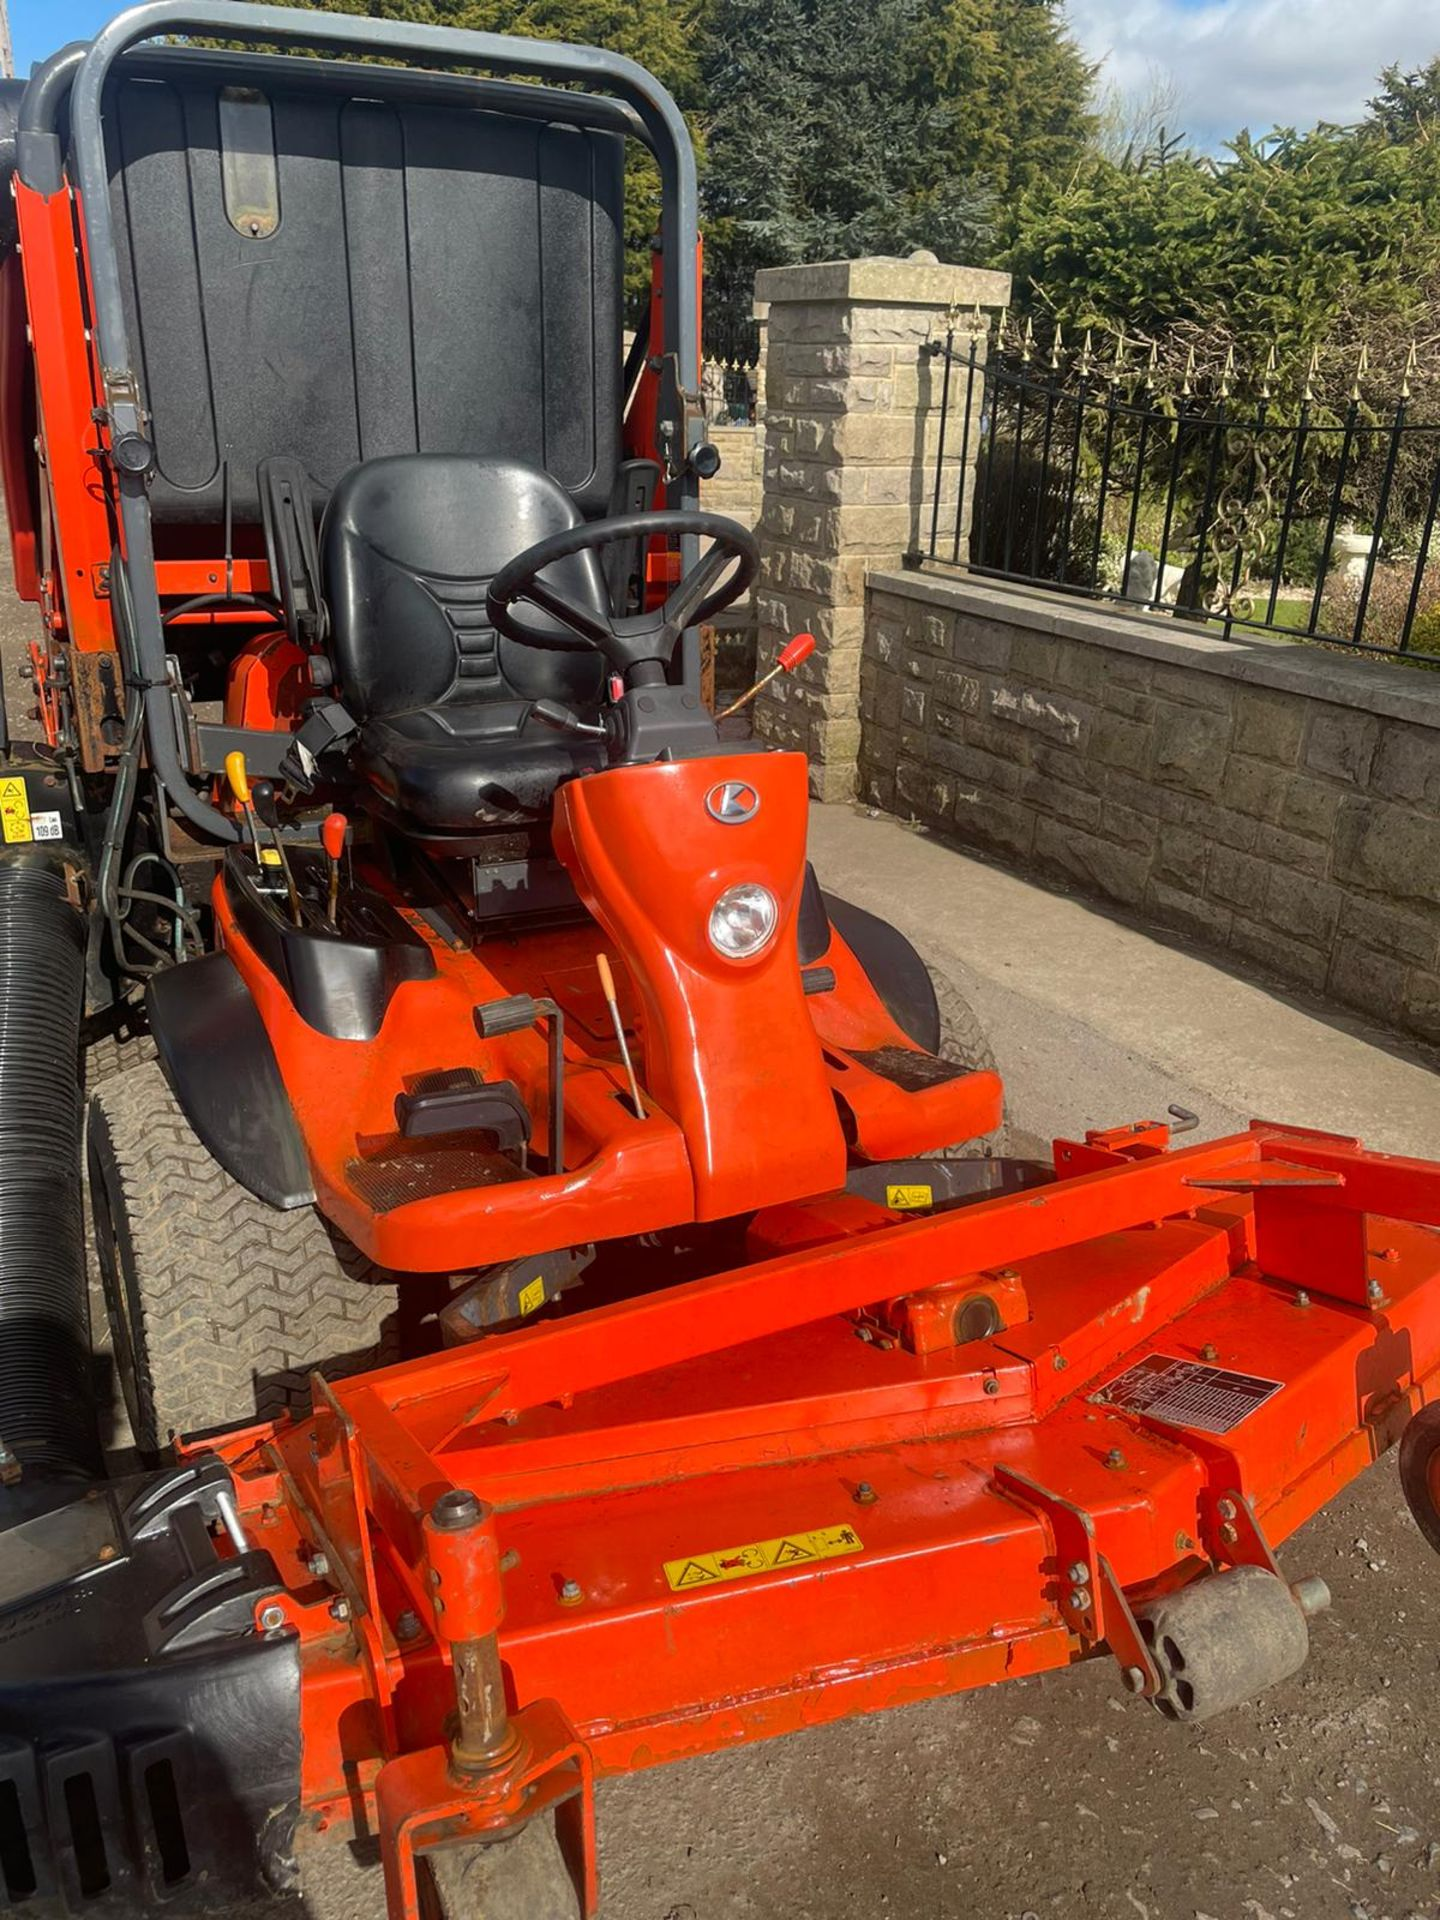 2011 KUBOTA F3680 OUT FRONT RIDE ON LAWN MOWER HIGH TIP COLLECTOR, 4 WHEEL DRIVE, PLUS VAT - Image 2 of 7